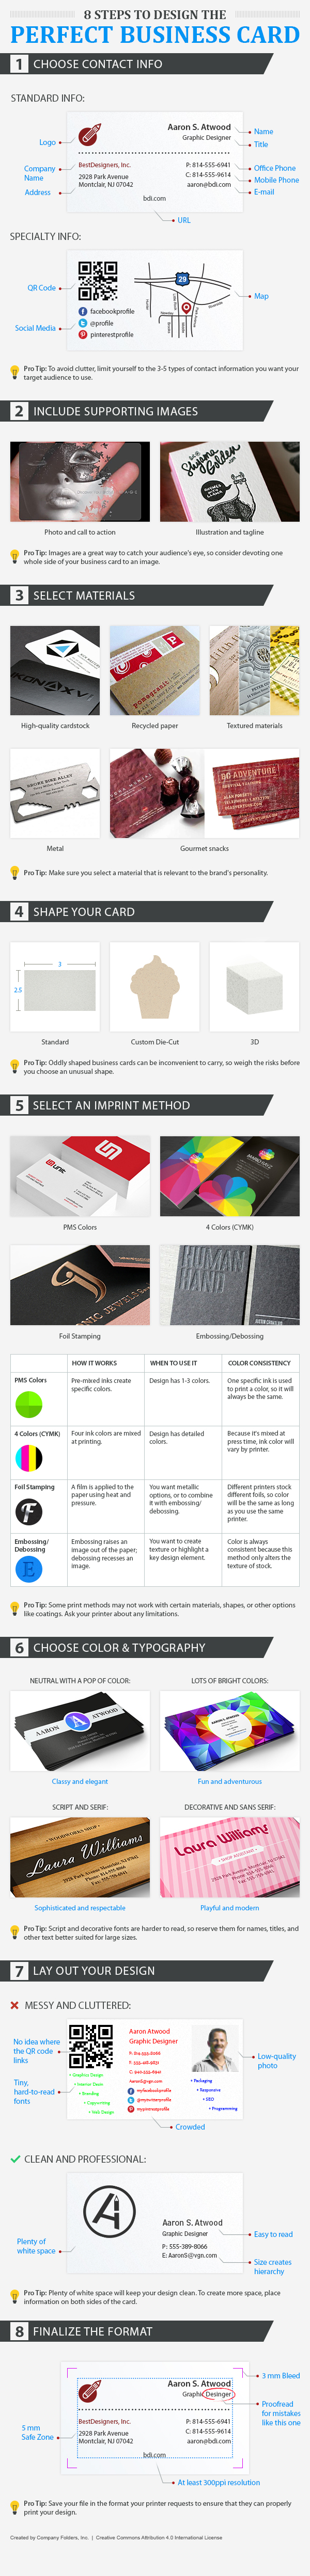 8 Tips to Design the Perfect Business Card (Infographic)